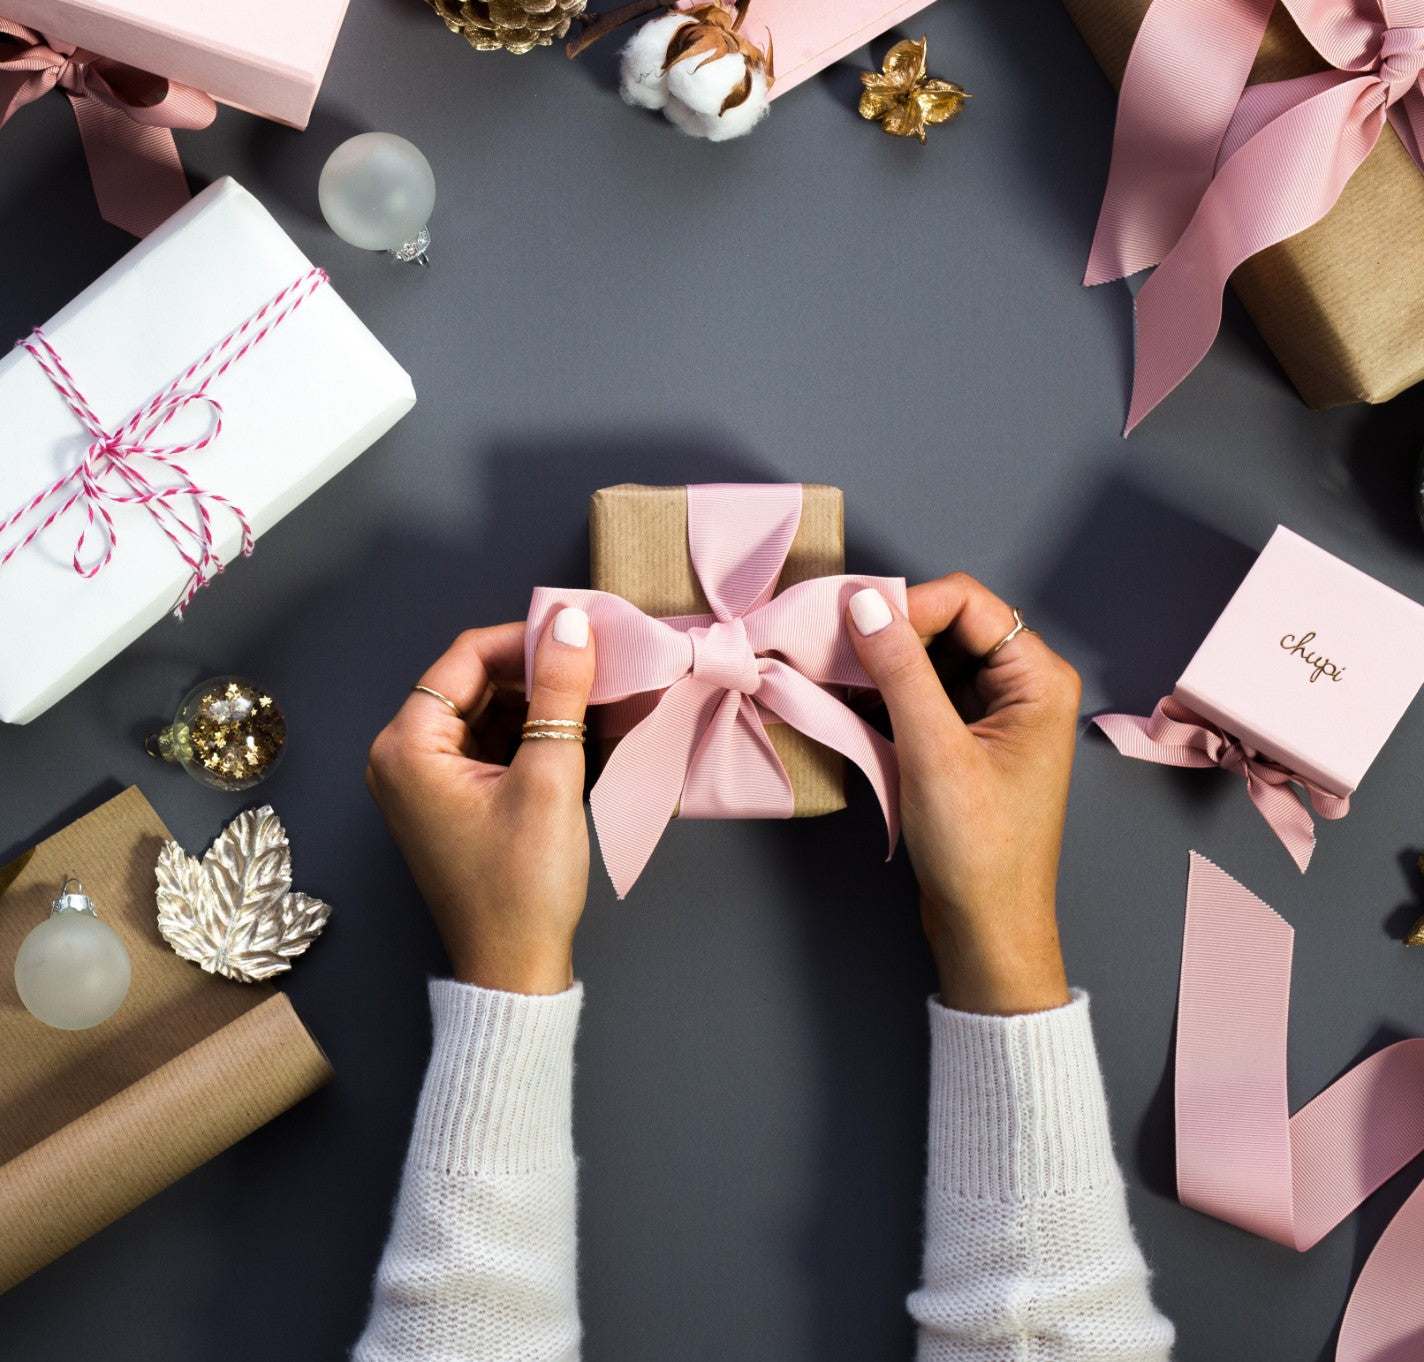 Our luxury gifting box